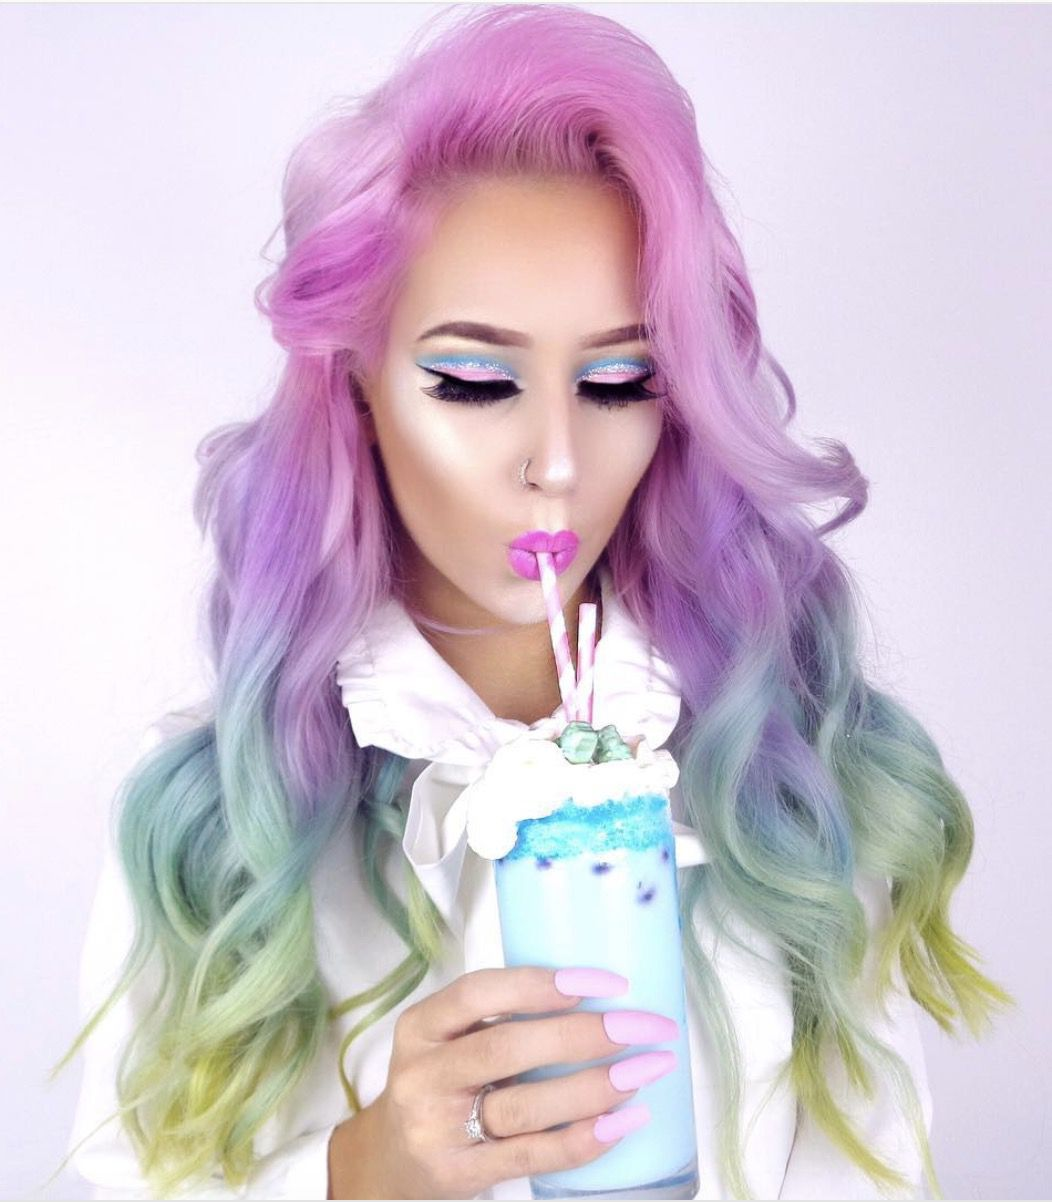 41 Most Jaw-Dropping Halloween Makeup Ideas That Are Still Pretty: Mermaid Hair / Unicorn Hair. Click though to see more awe inspiring pretty Halloween makeup looks, gorgeous Halloween makeup and Halloween costumes. #halloweenmakeup #halloweenmakeuppretty #halloweencostumes #halloweenmakeupinspo #mermaidhair #unicornhair